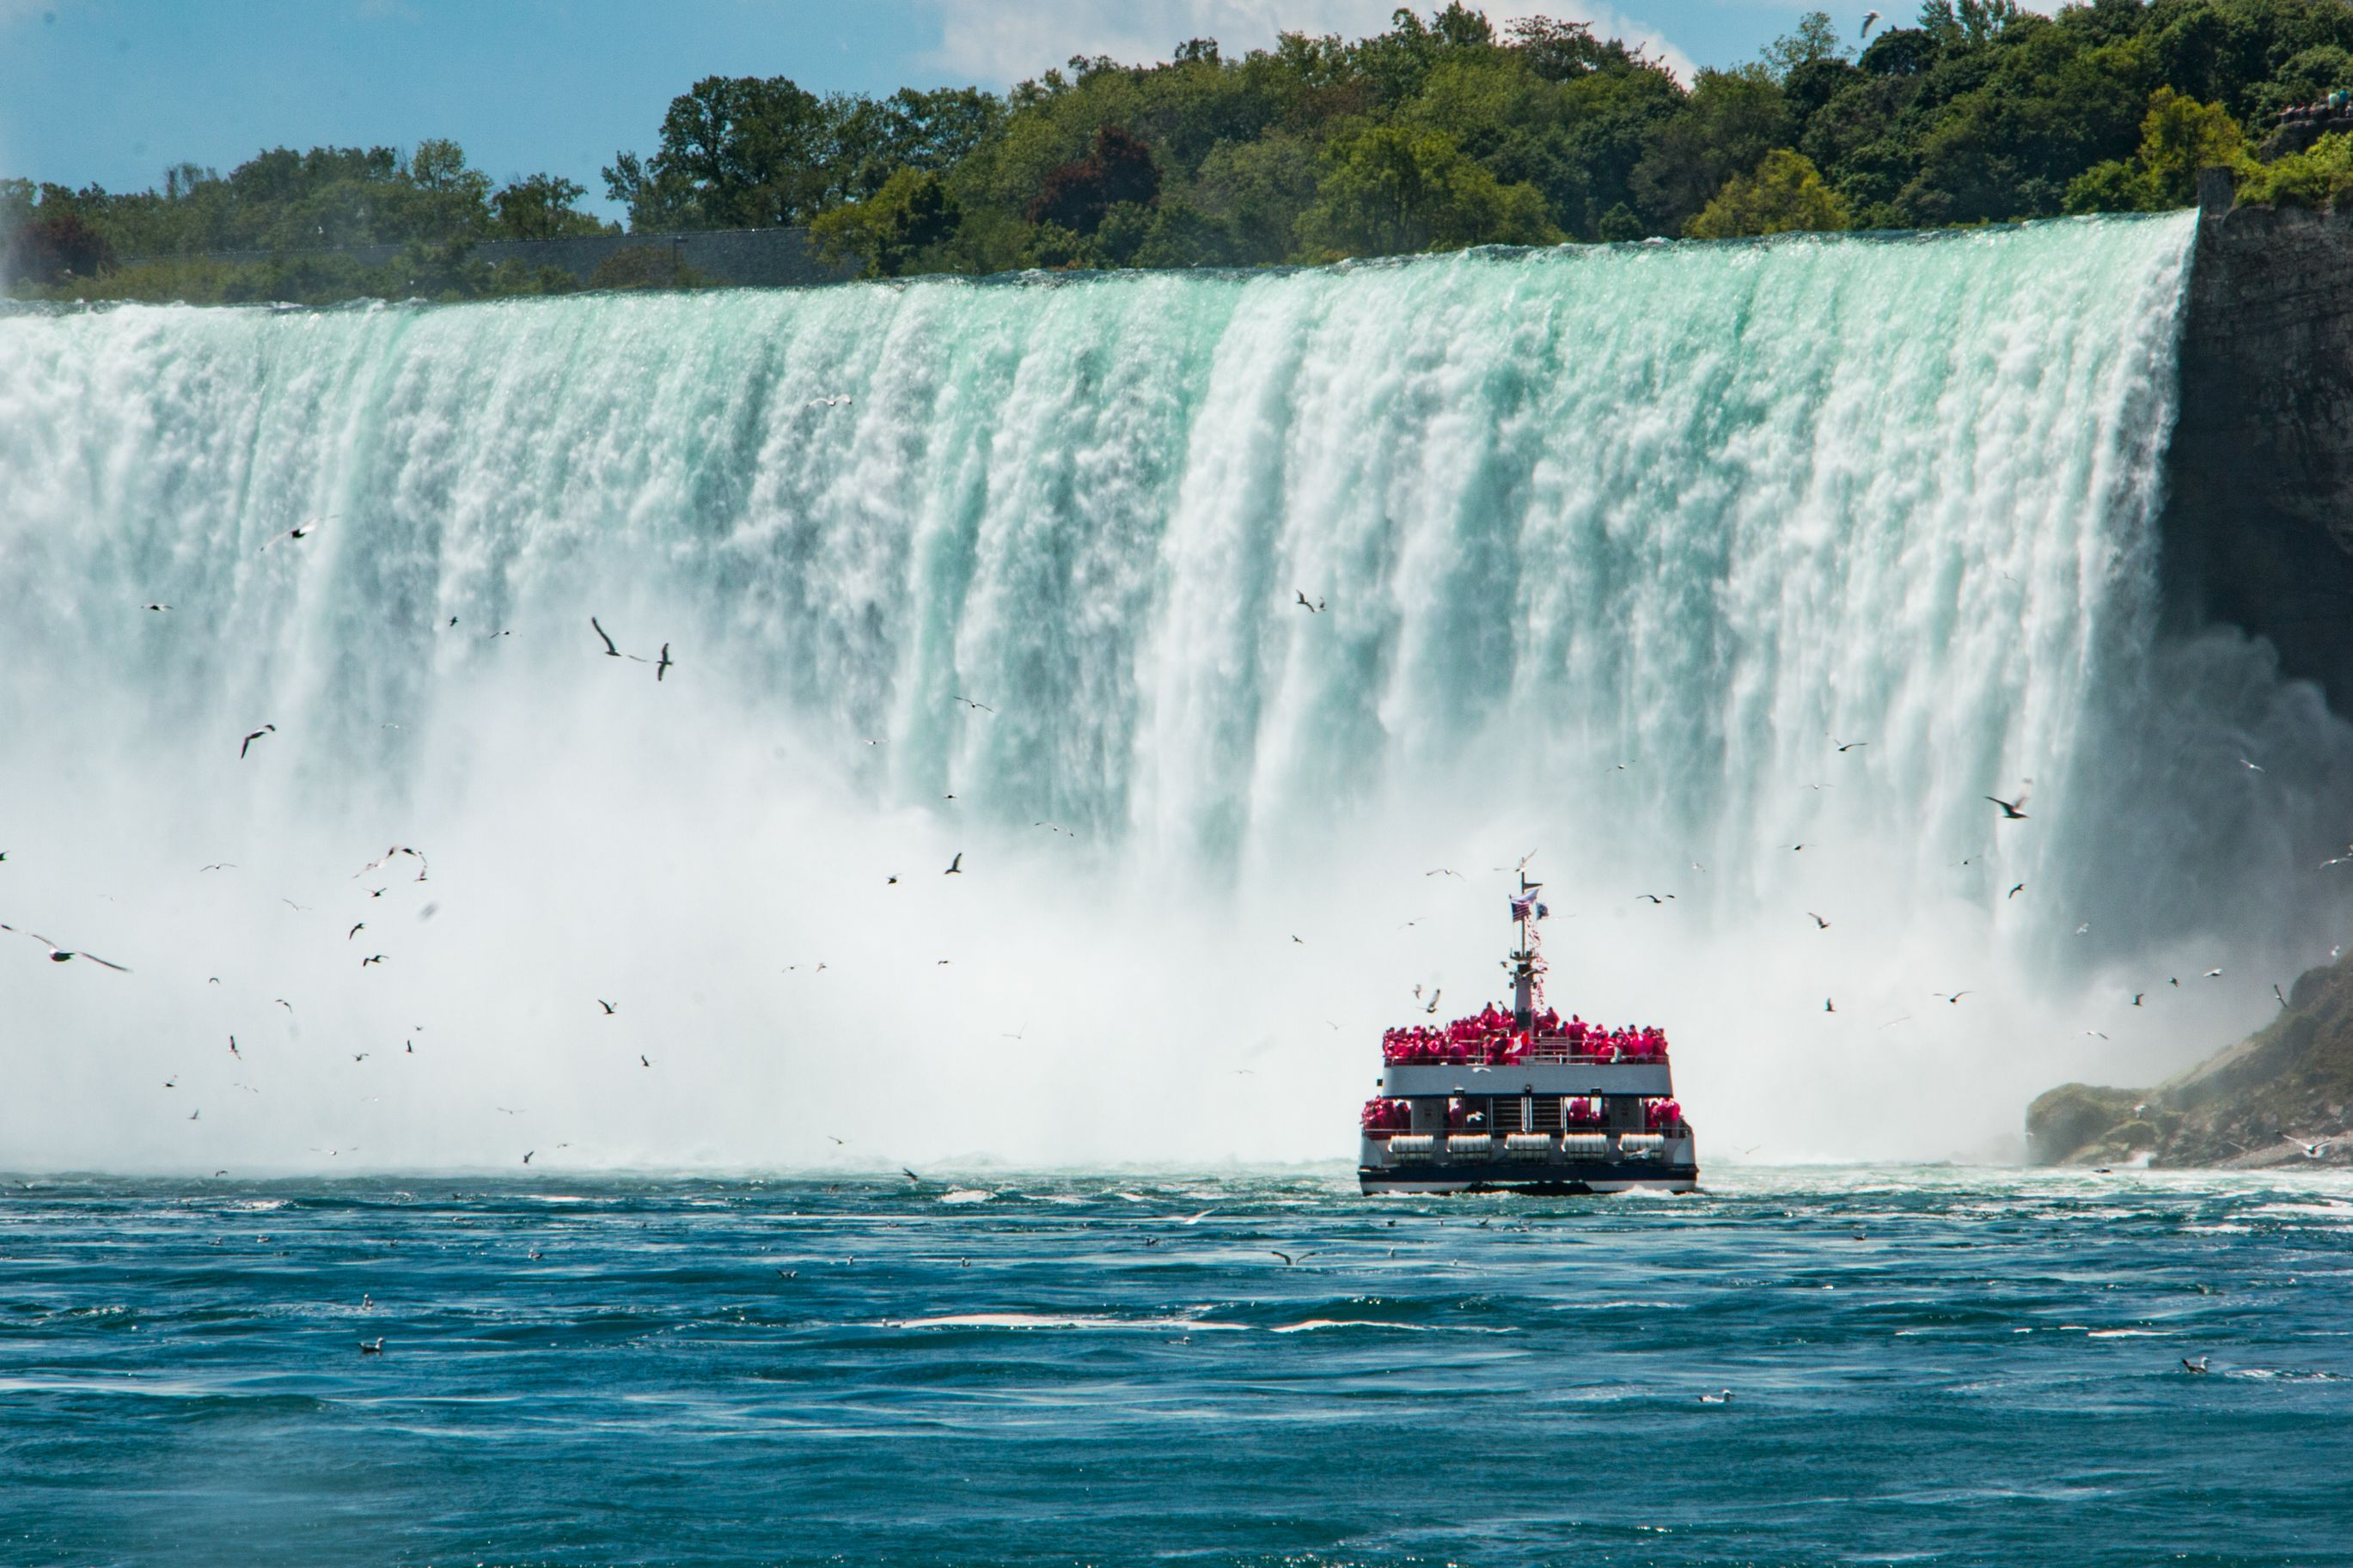 Deluxe Niagara Falls Day Tour with Boat Cruise from Toronto